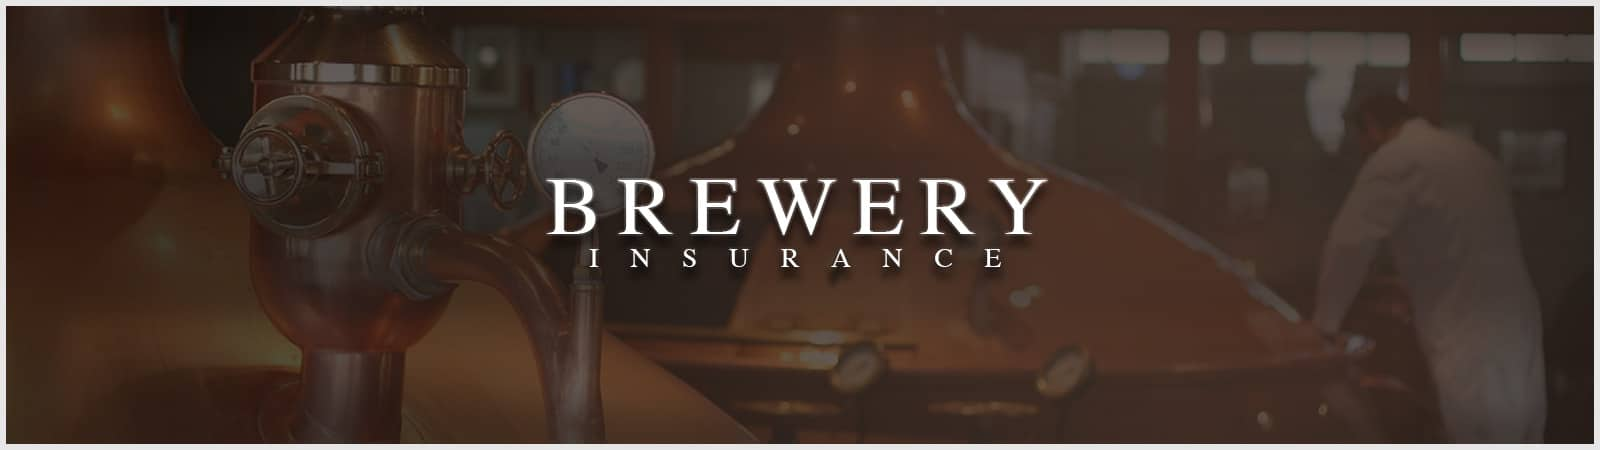 Here's What You Need To Know About Insurance For A Brewery